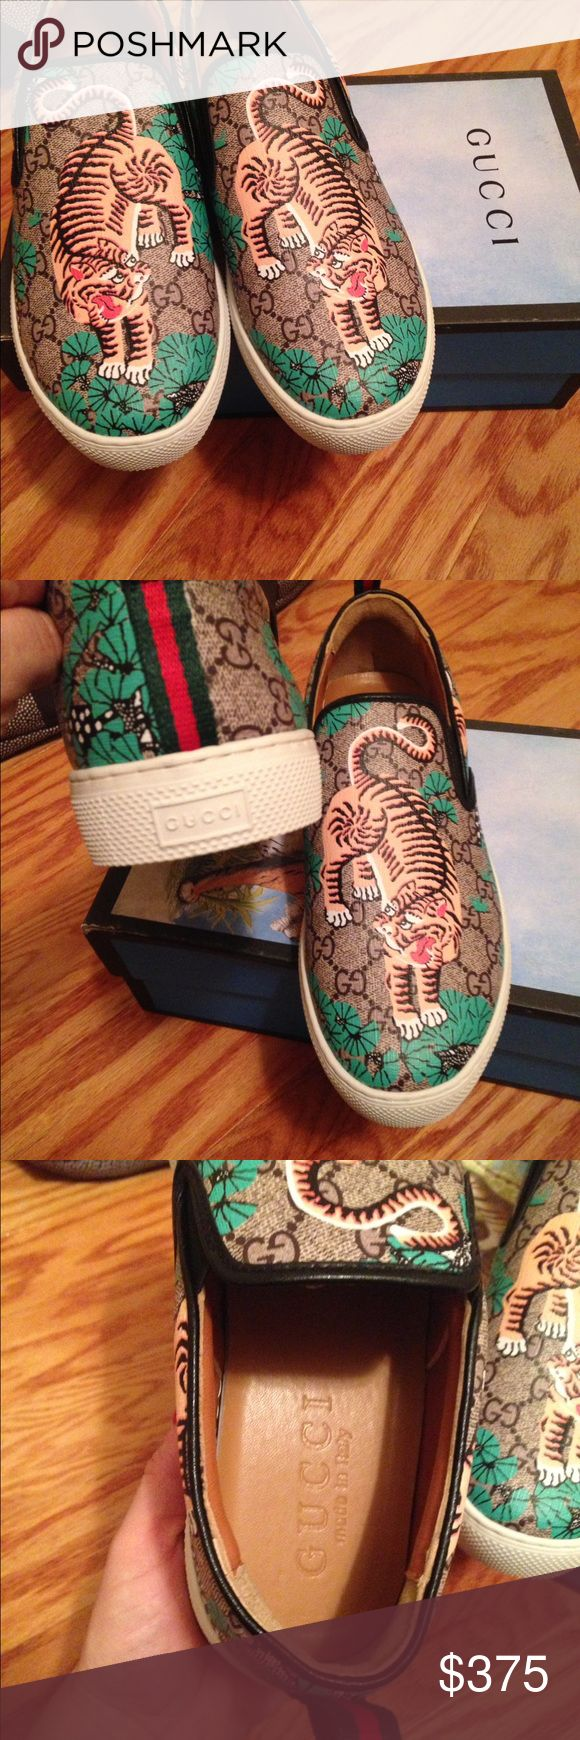 Gucci Bengal tiger slip on sneaker New authentic men's size 8.5 with box Gucci Shoes Loafers & Slip-Ons